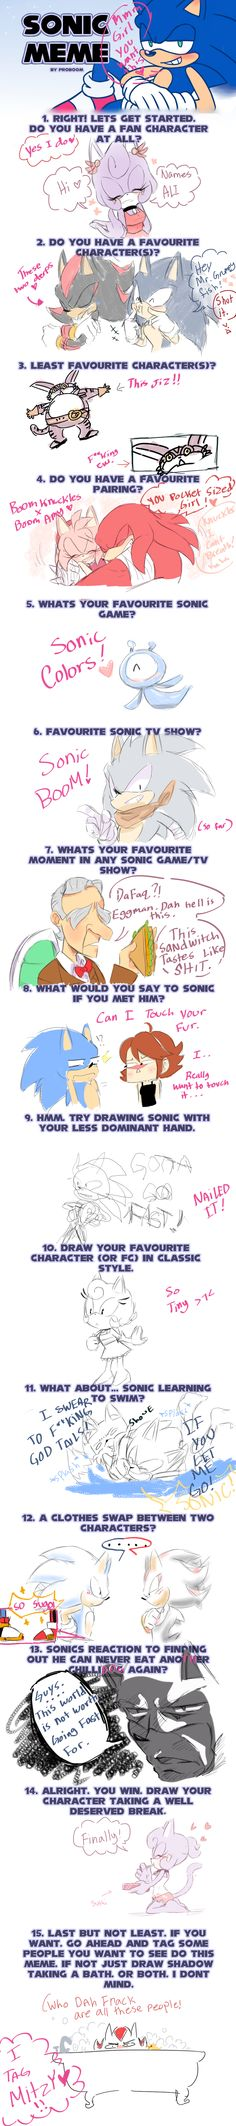 Sonic Meme! by kirei-naa on DeviantArt. I must find this person. SHE LIKES SONIC COLOURS XD